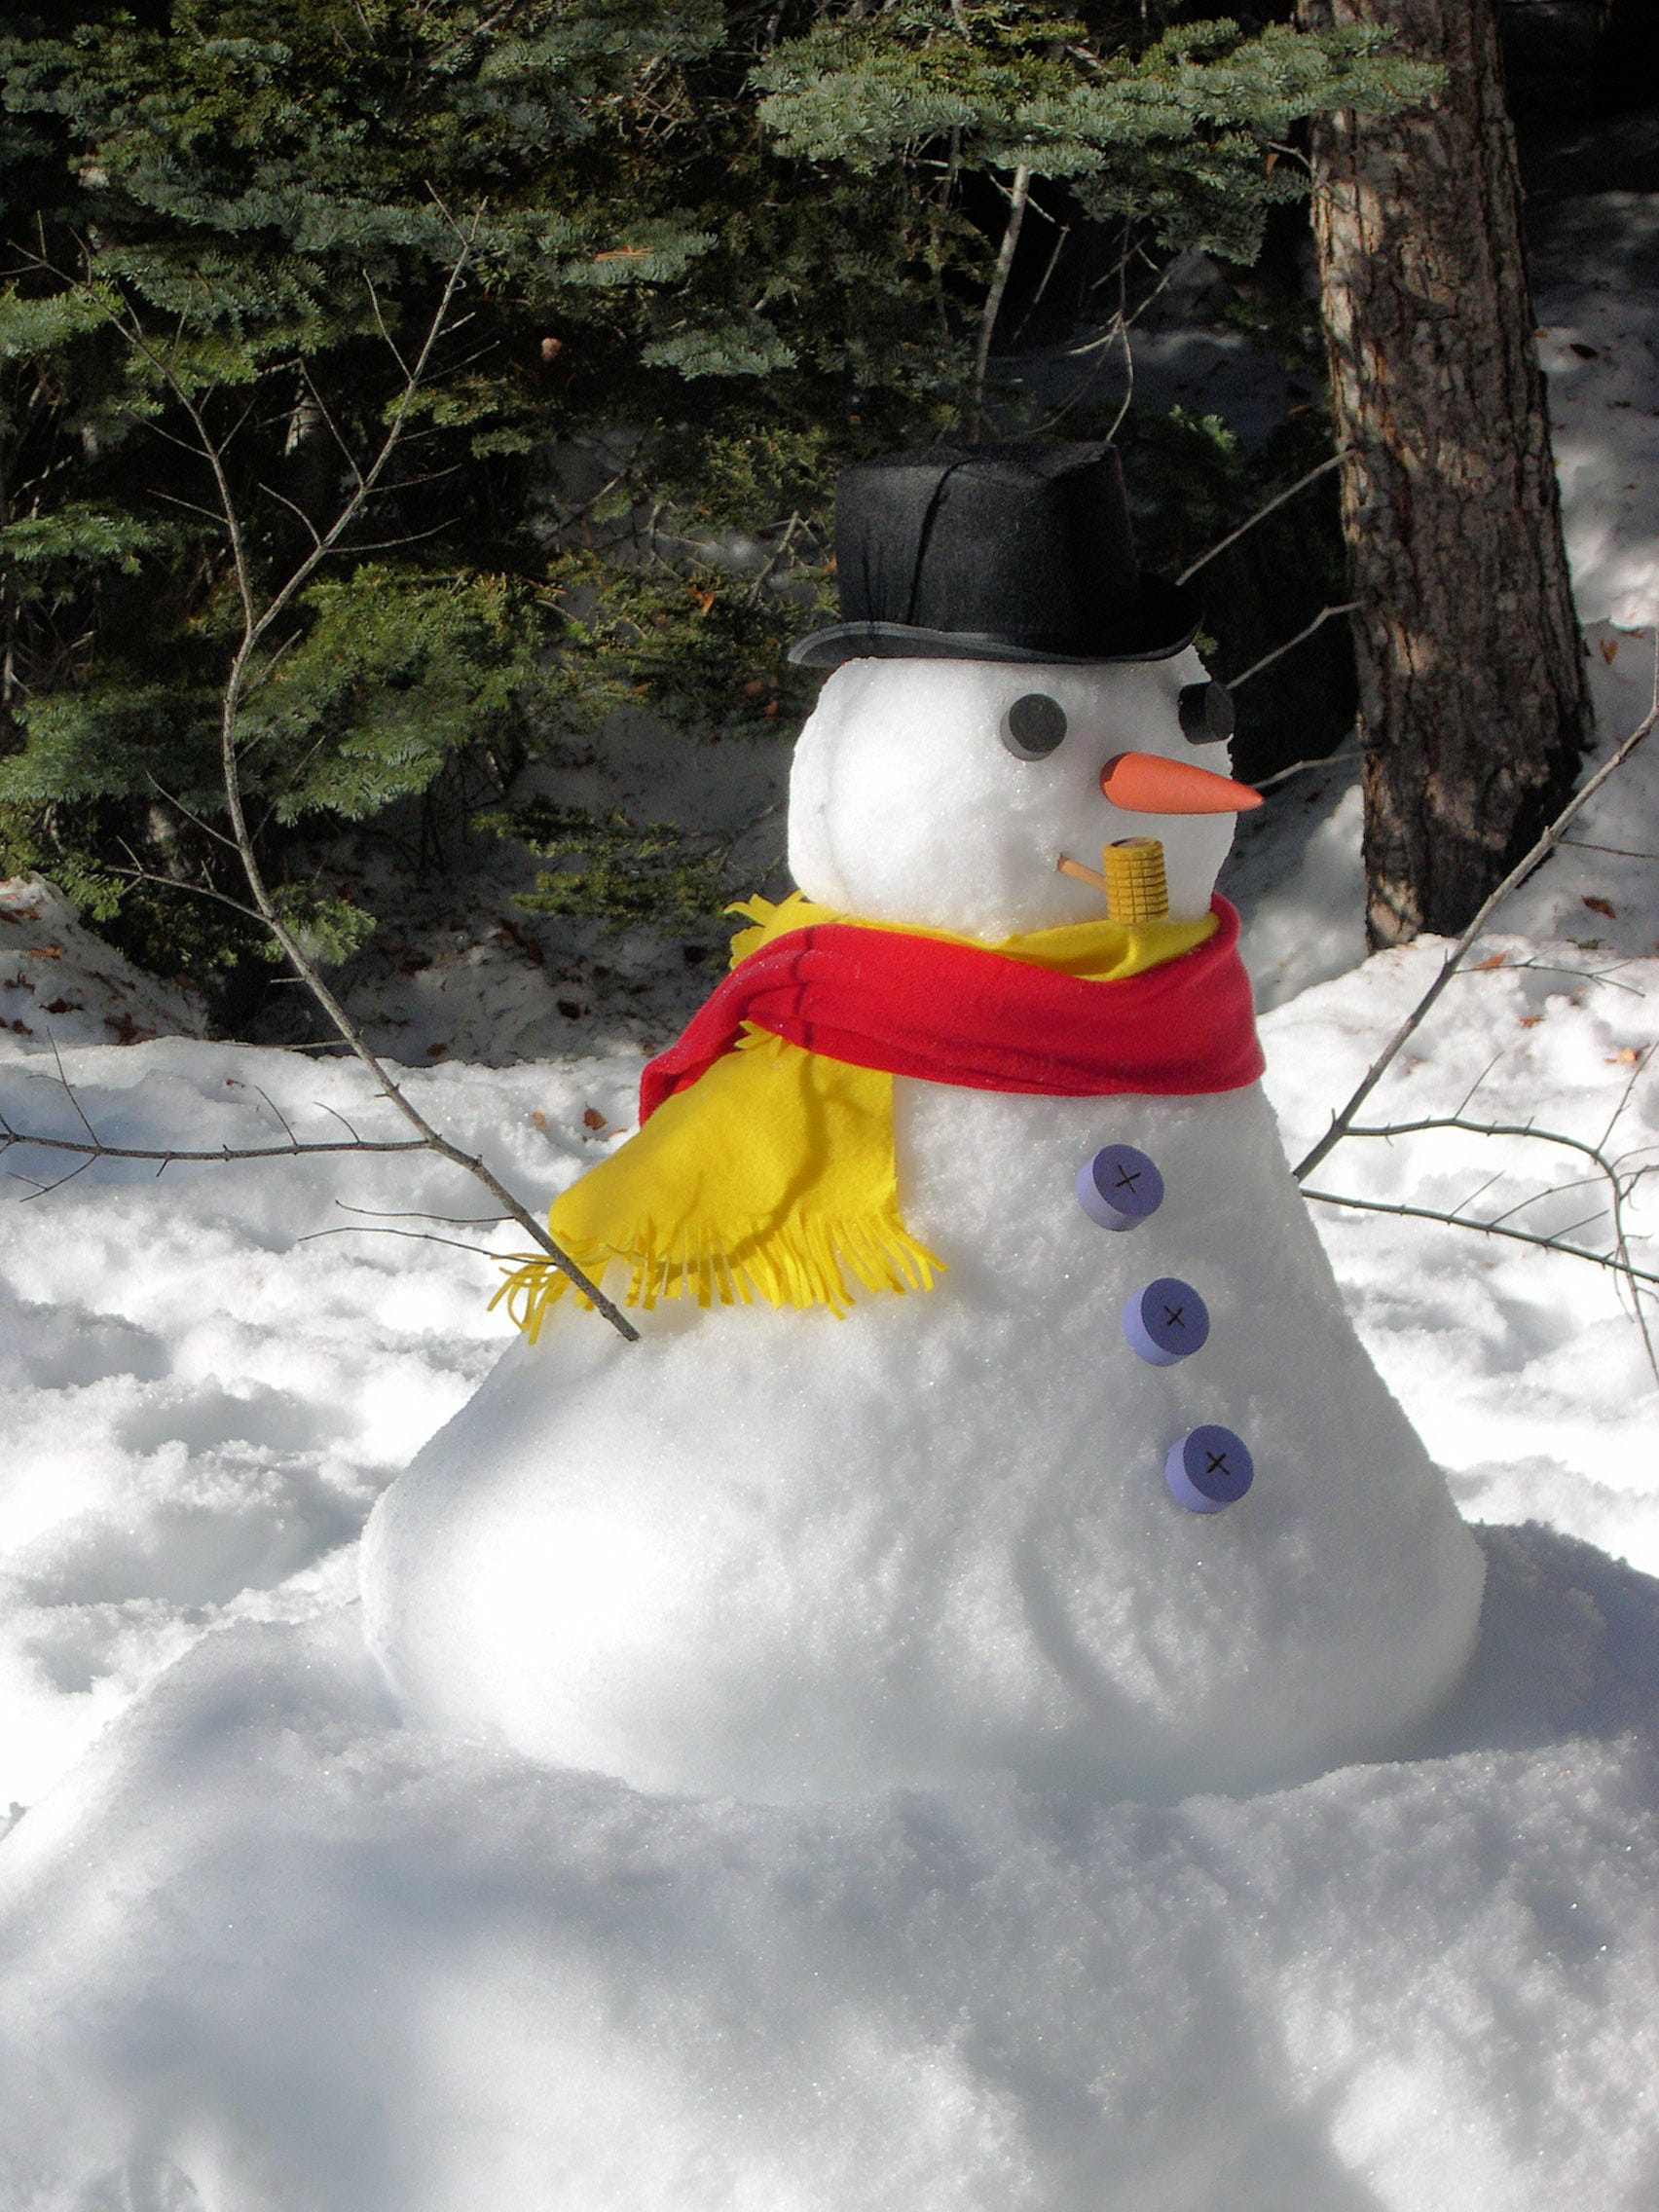 A snowman in a hat and red scarf